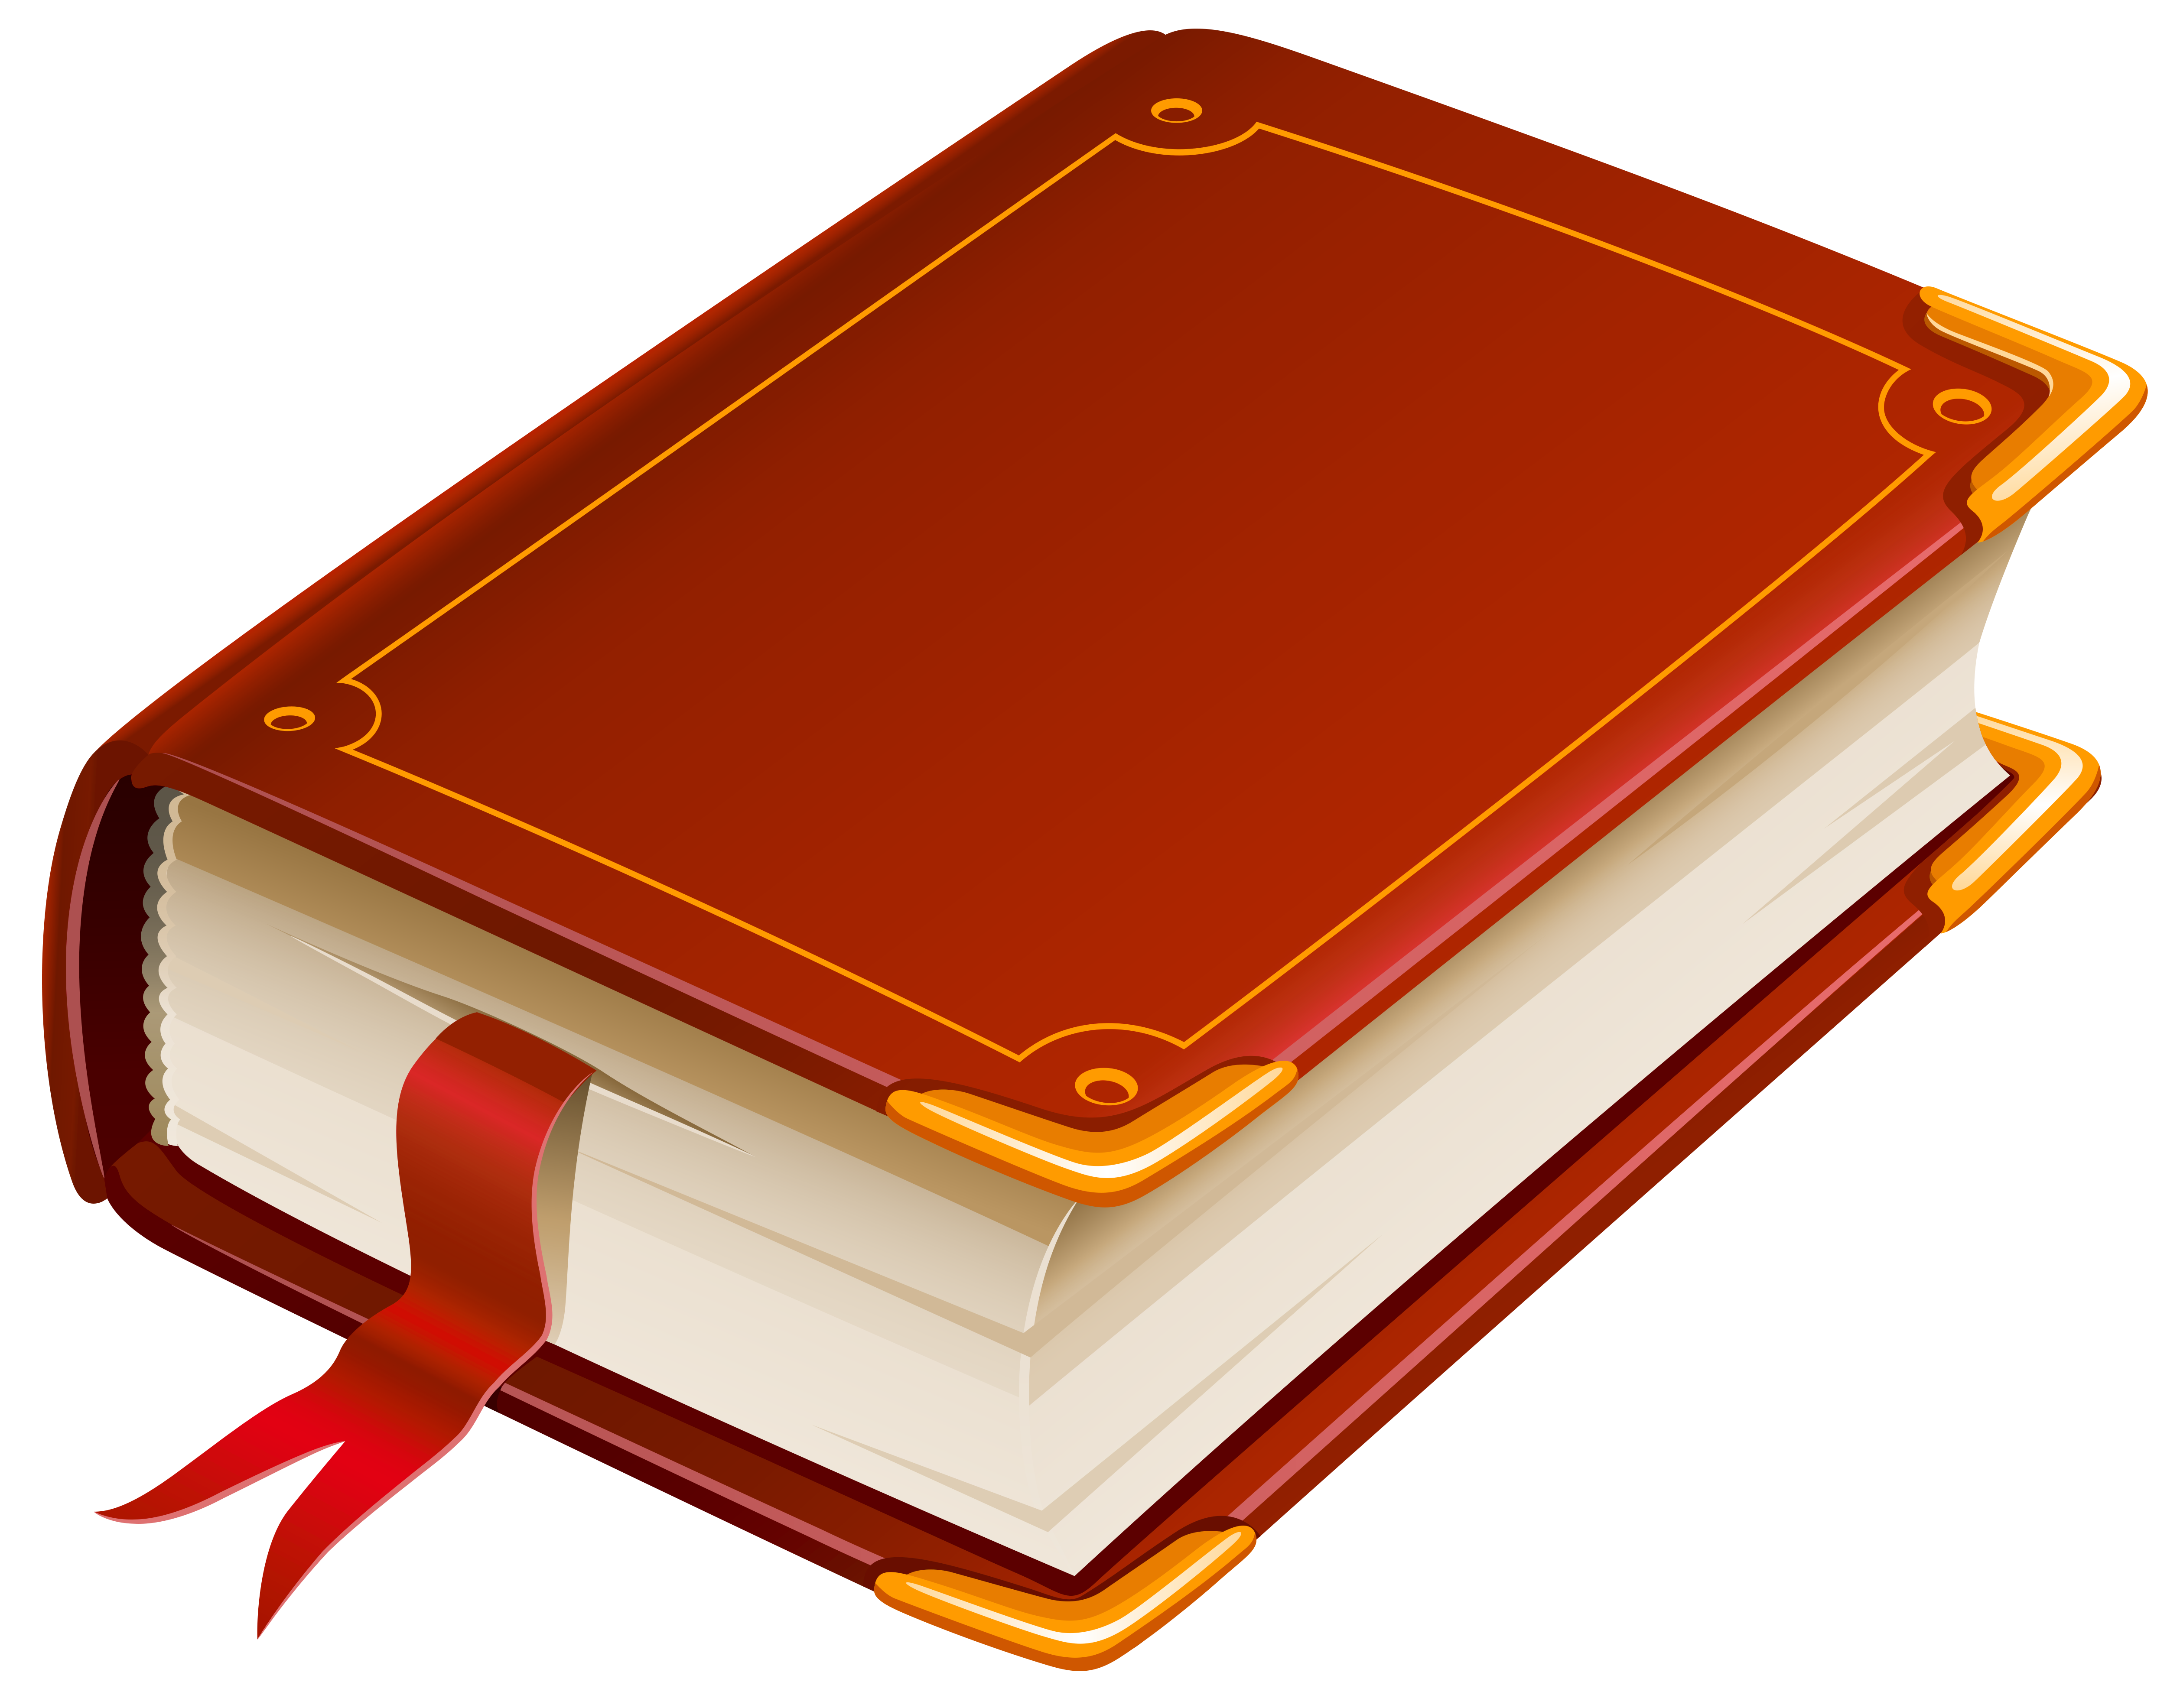 Book clipart. Red png best web